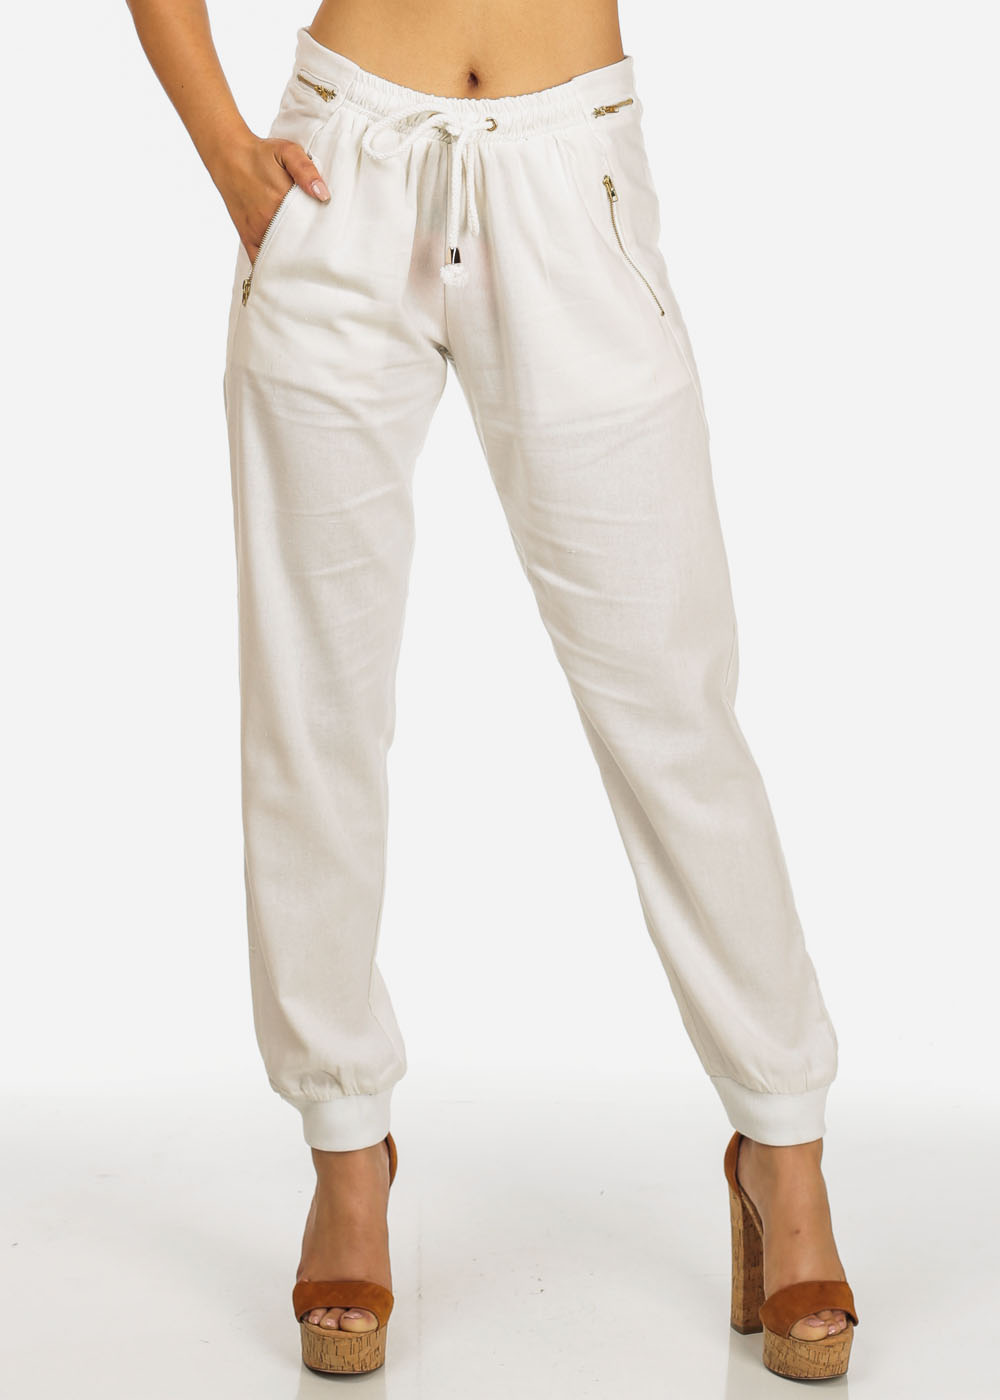 Womens Juniors Ivory High Rise Zipper Accents Drawstring Waist Linen Pants 10997I